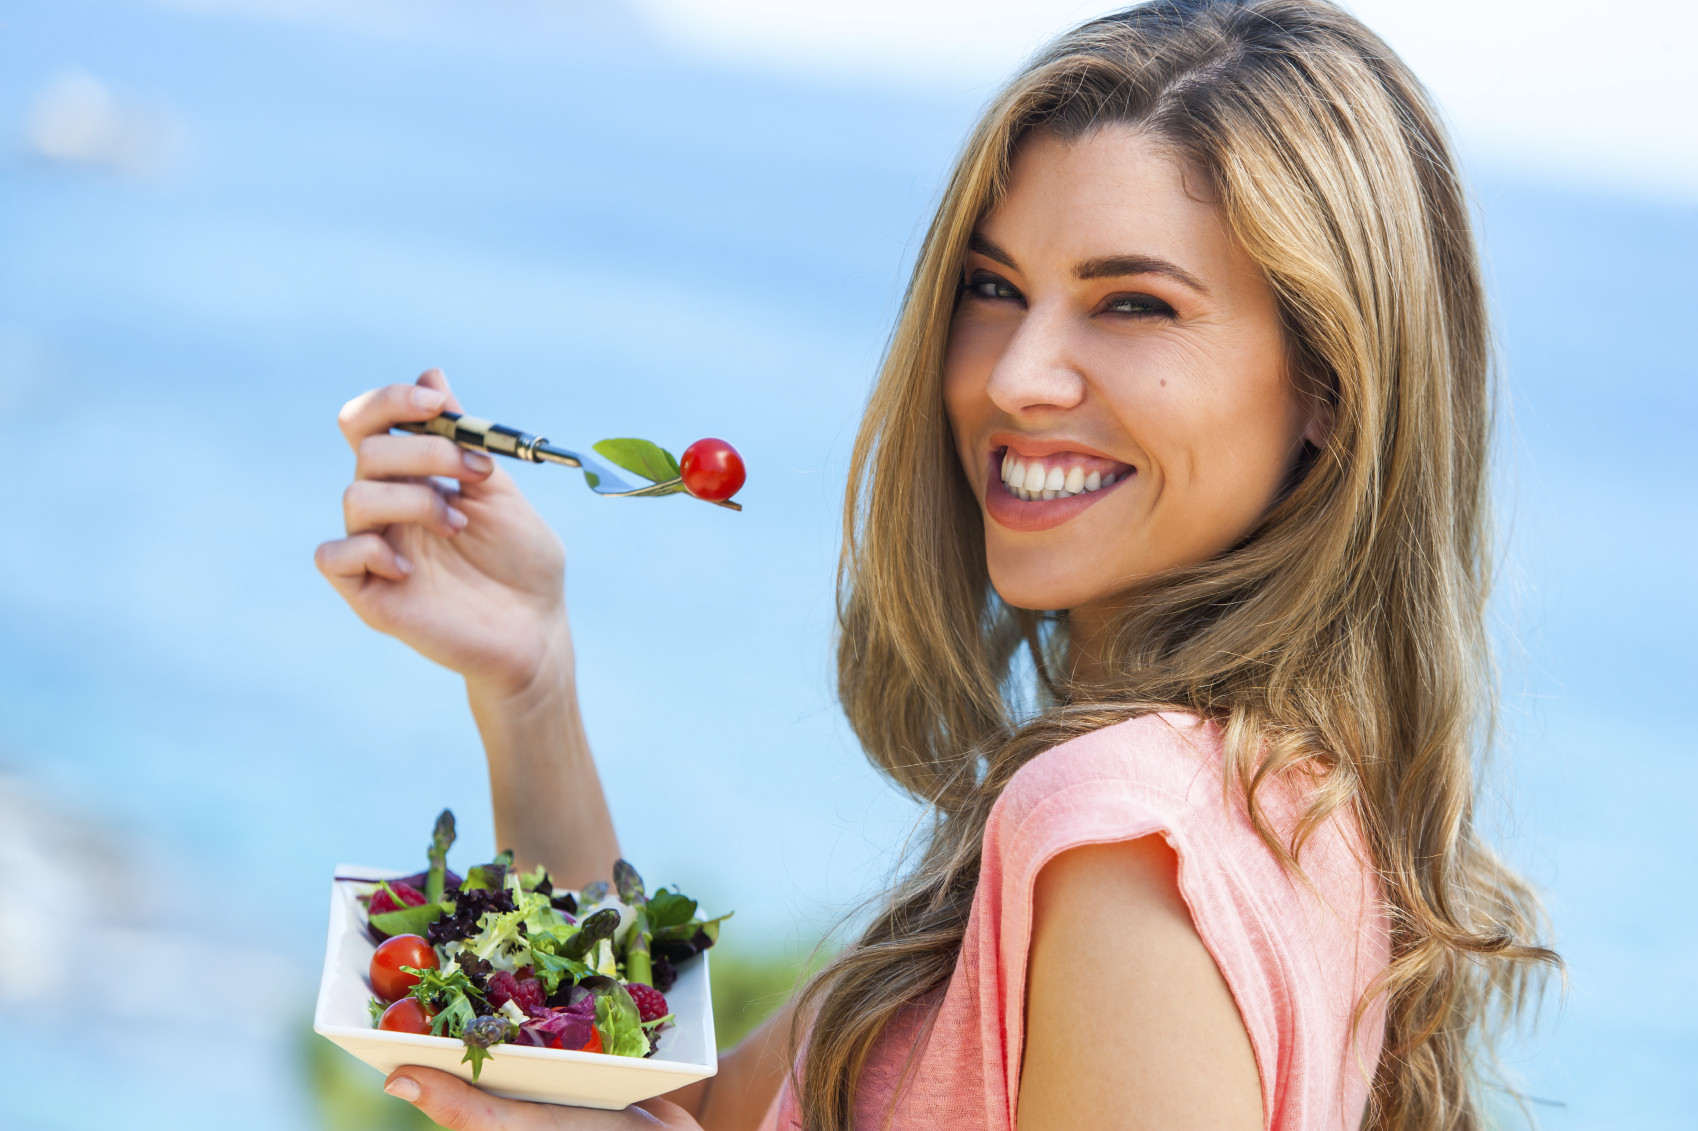 healthy living dating site In fact according to a recent study, 11% of internet users (representing 9% of all adults) say that they have personally used an online dating site such as matchcom, eharmony, or ok cupid further more, 22% of 25 to 34 year olds and 17% of 35 to 44 year olds are online daters.